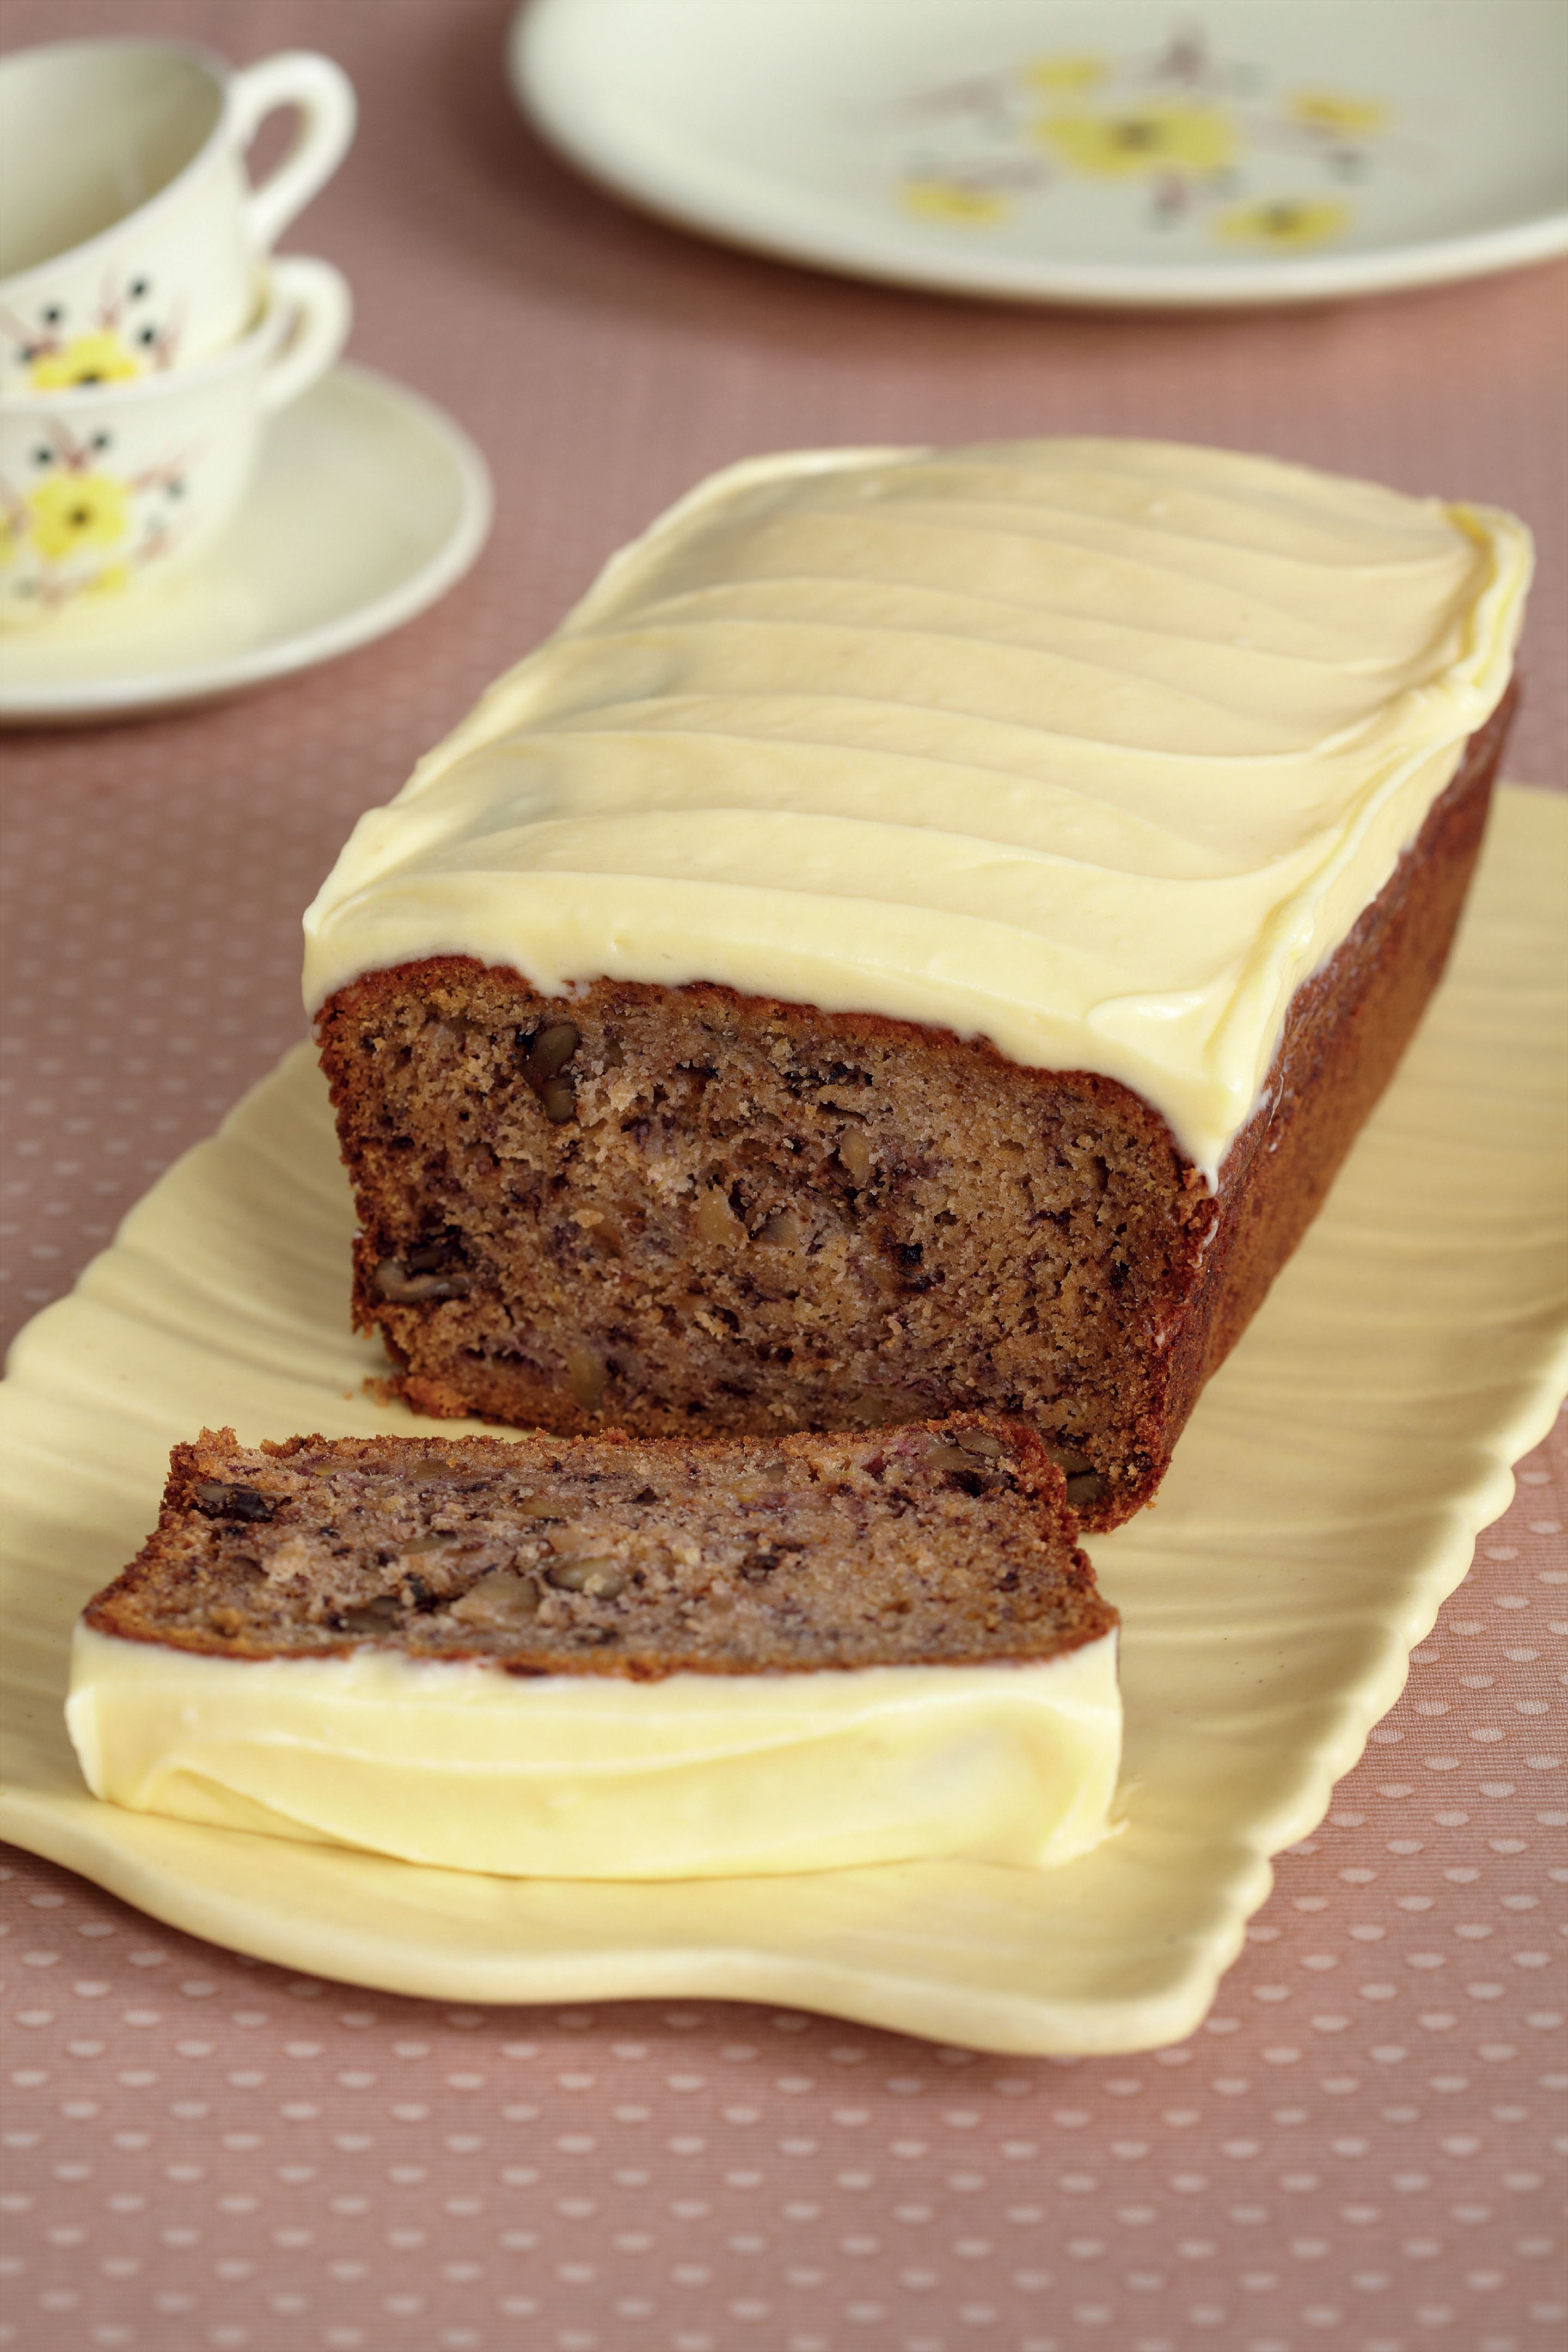 Banana loaf cake with banana frosting